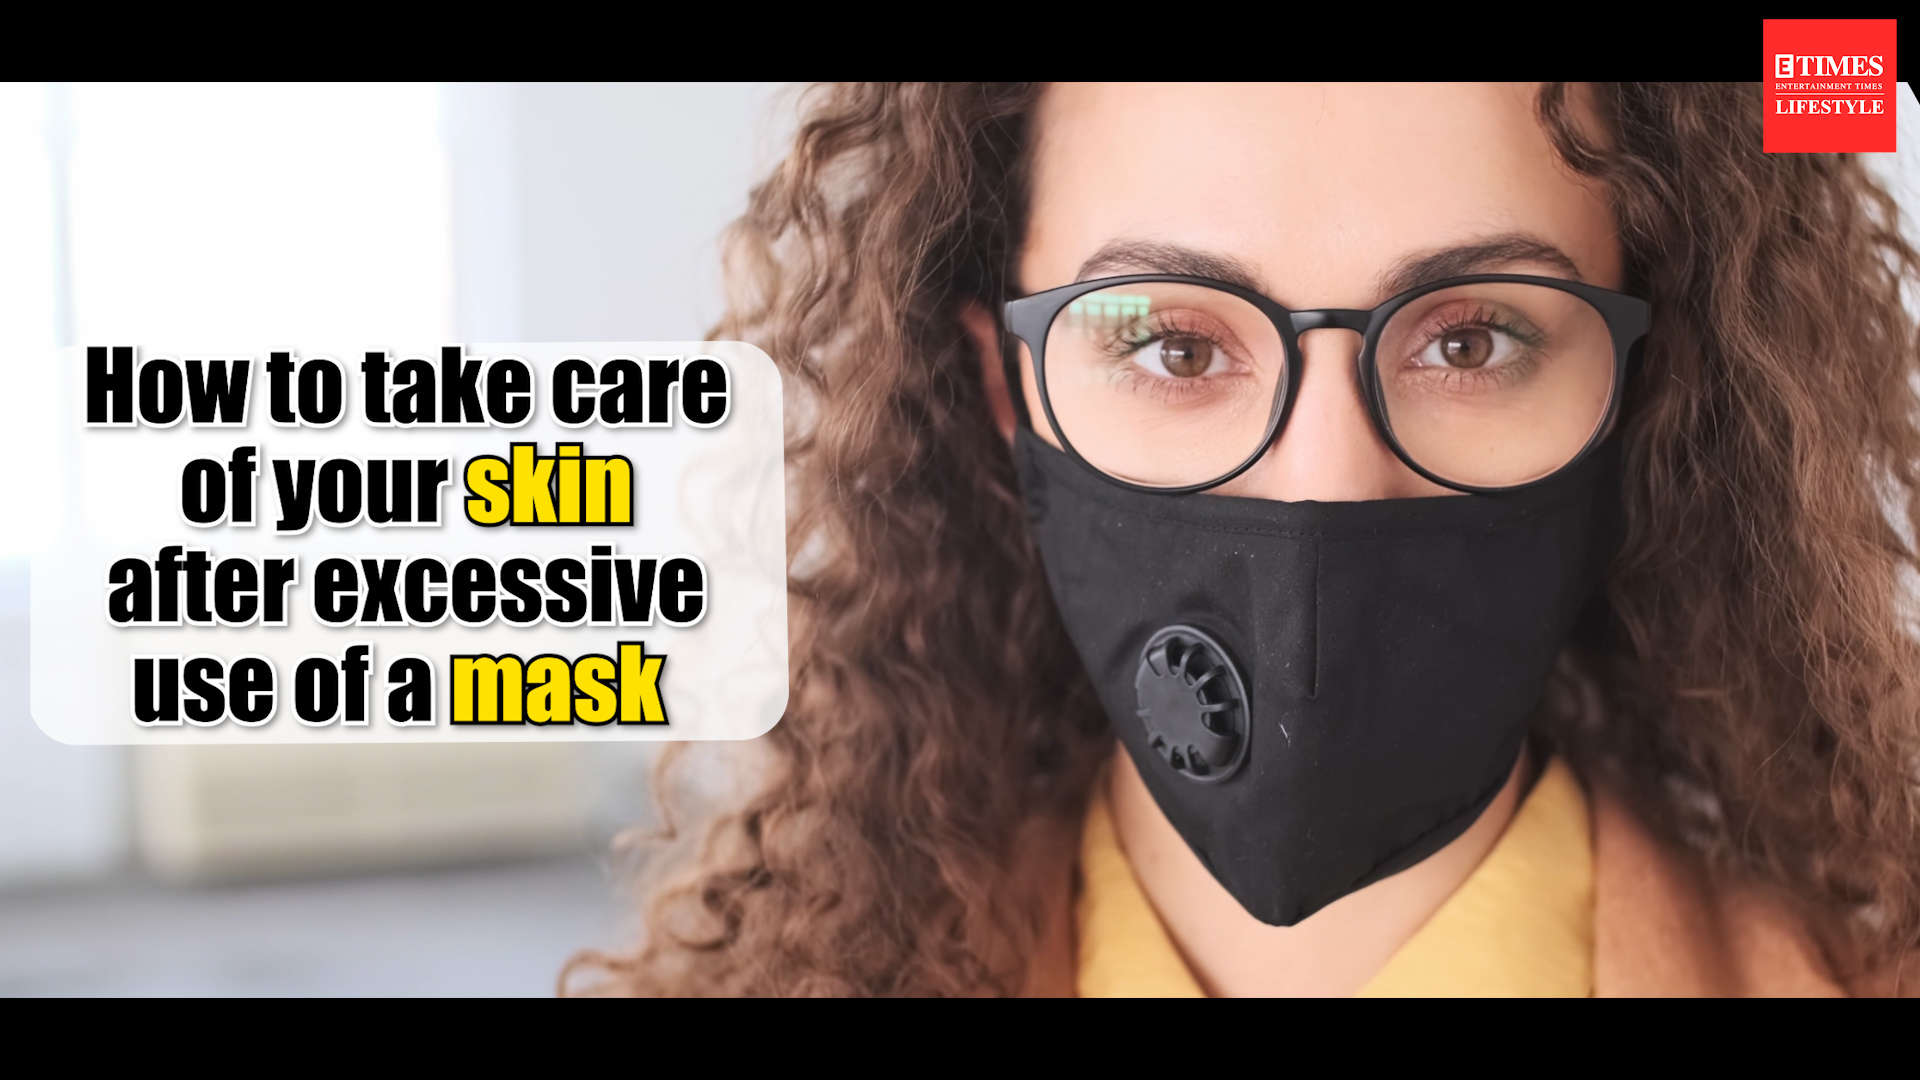 how-to-take-care-of-your-skin-after-excessive-use-of-mask